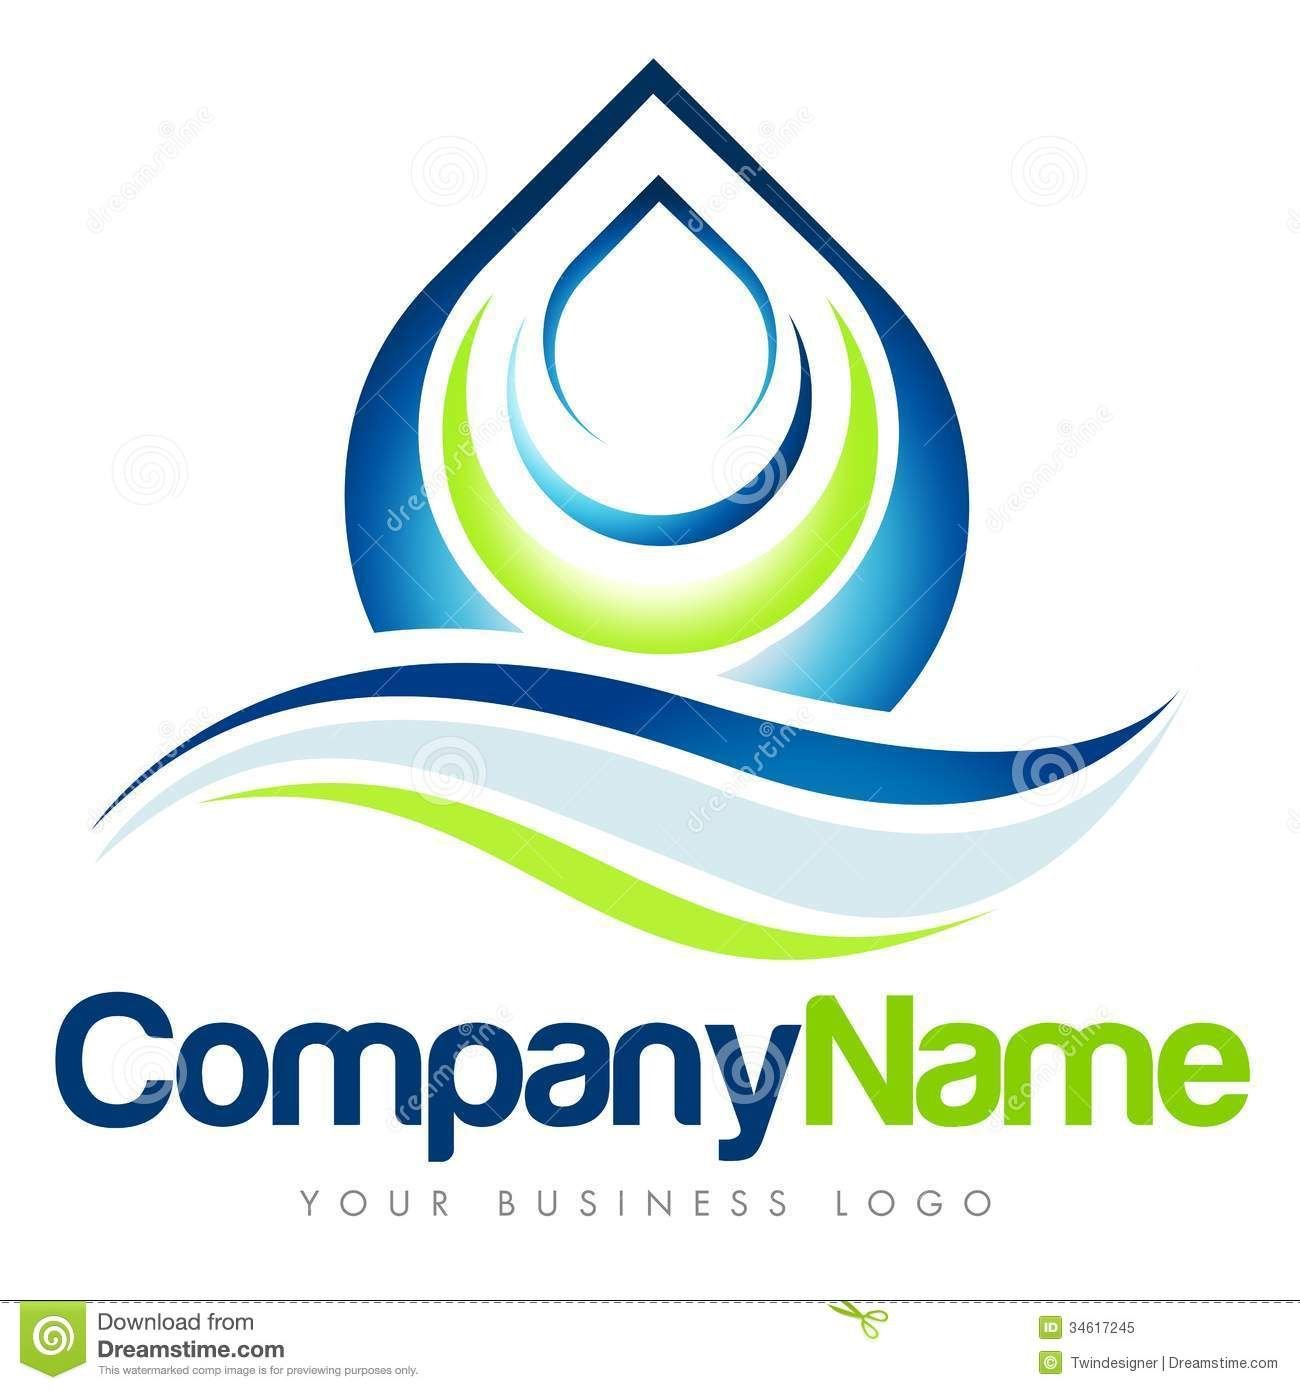 business logo emasdvrlistscom bad logos pinterest